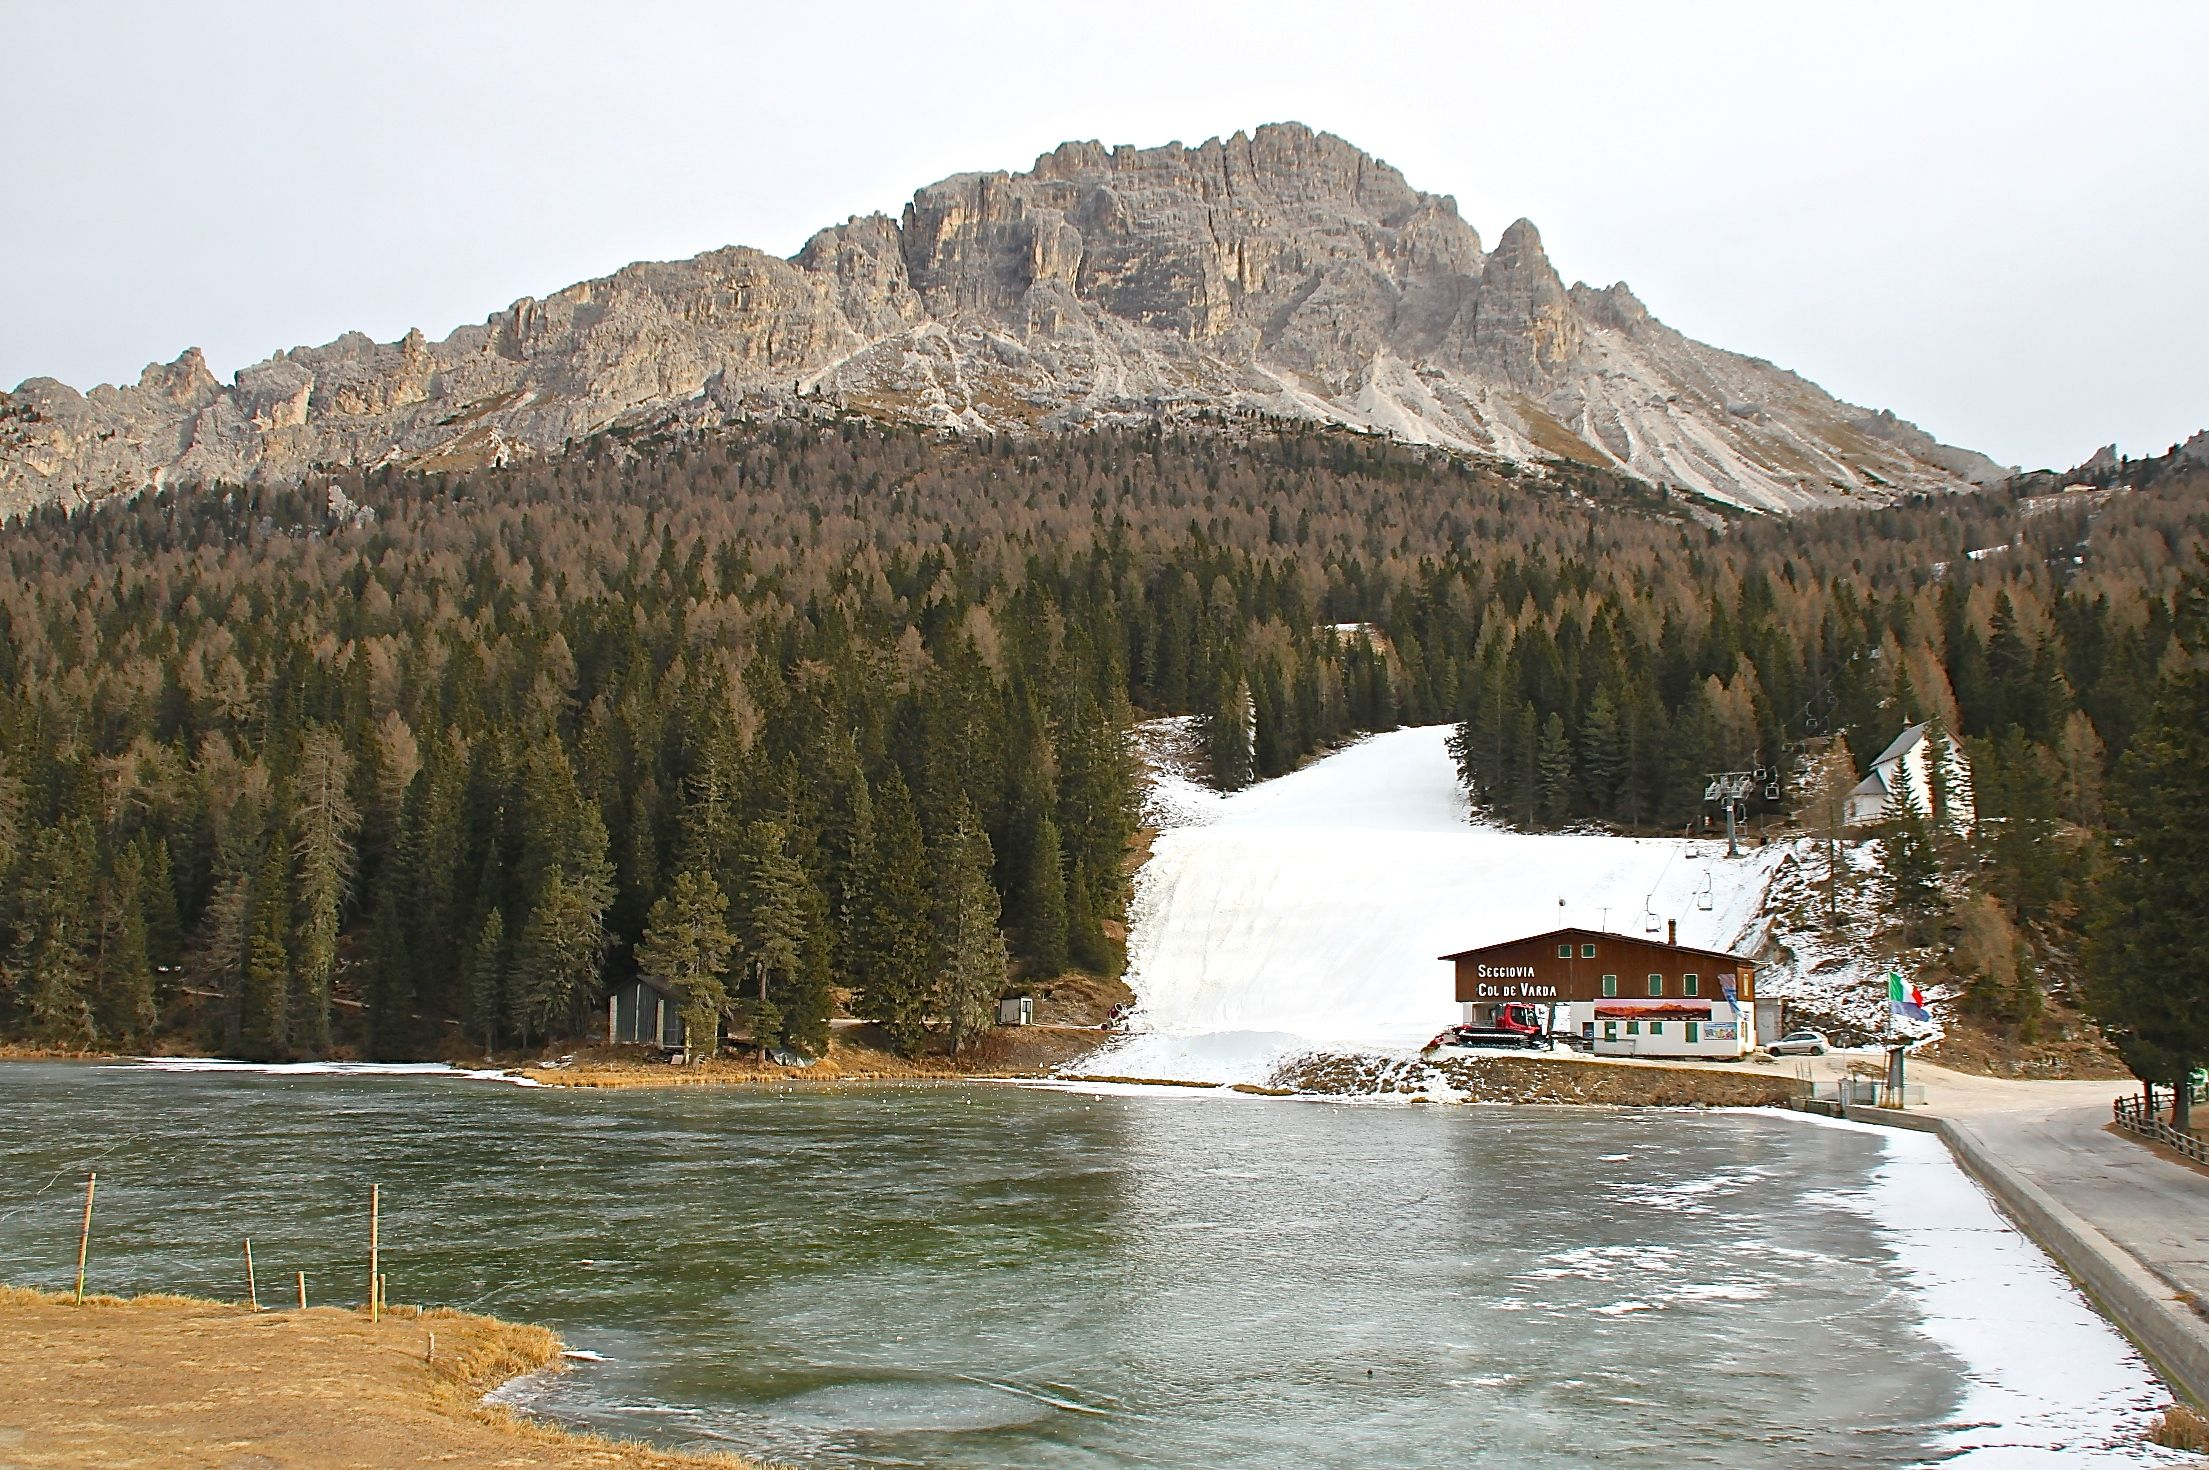 Lakes freeze up in the Dolomite mountain range from November through to Springtime